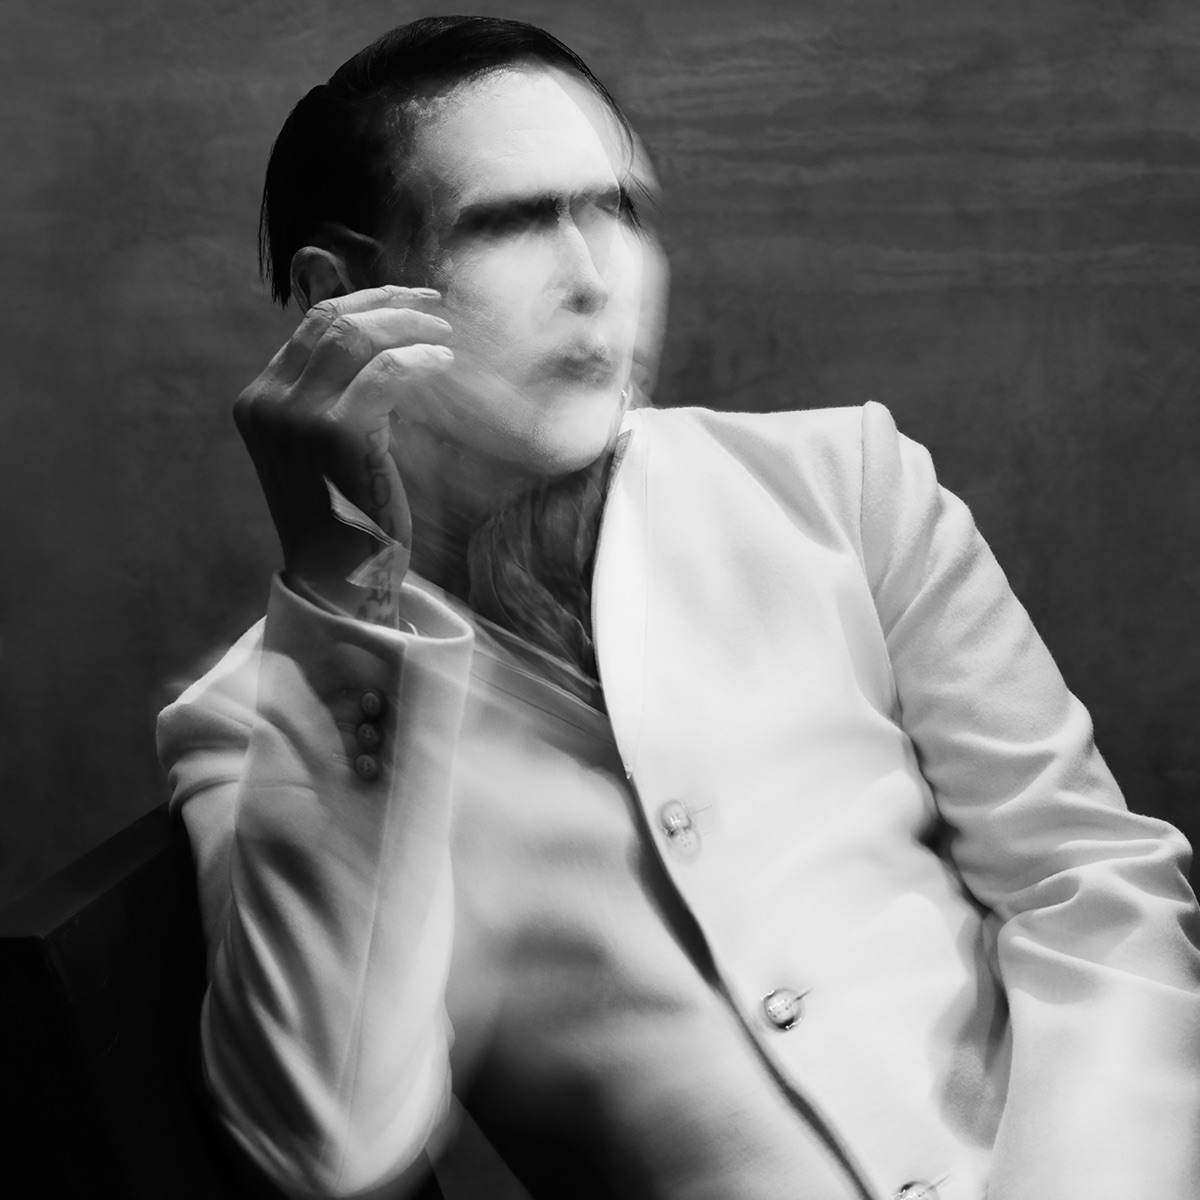 THE PALE EMPEROR Deluxe Edition Marilyn Manson CD cover